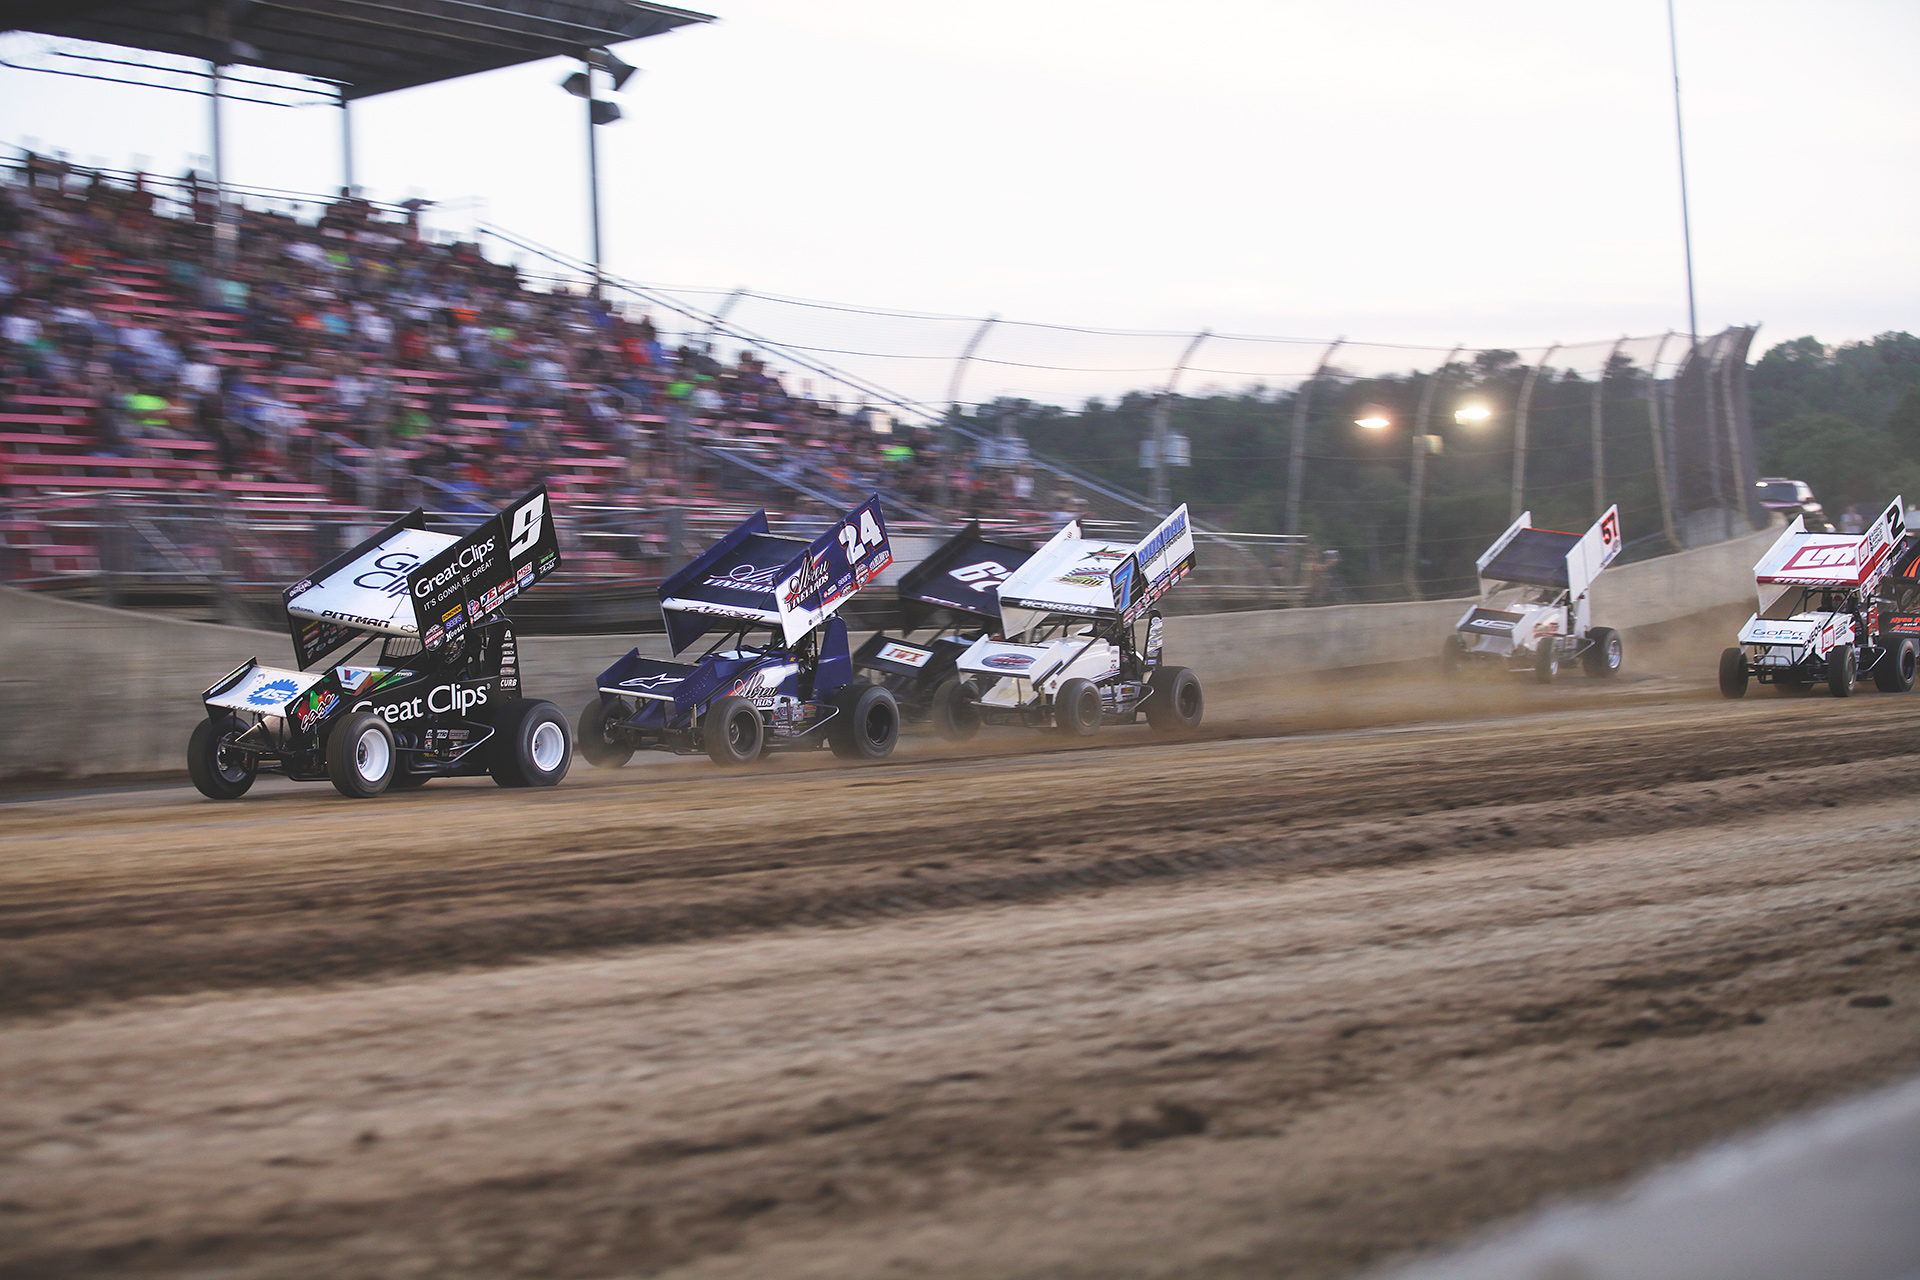 Daryn Pittman leads a stacked field of Rico Abreu, Christopher Bell, Paul McMahan, Kyle Larson, Shane Stewart and David Gravel and Joey Saldana in to the first turn in the dash race at Lawrenceburg Speedway, IN. ( Jeffrey Turford / TDP )